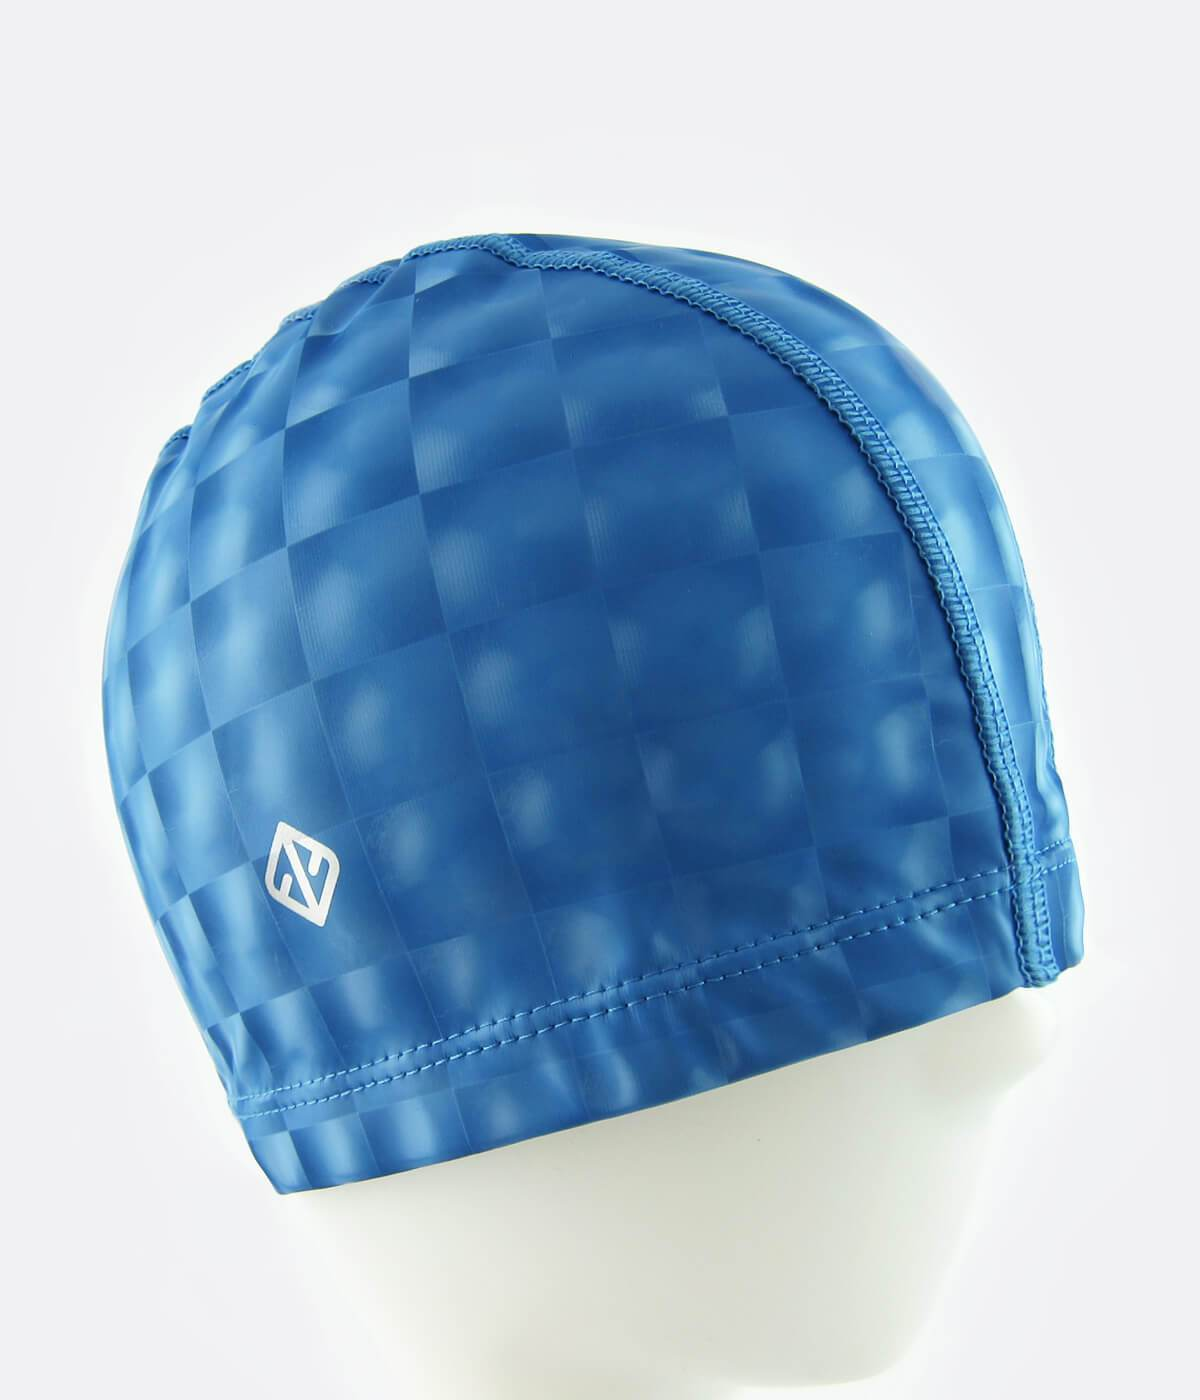 PU Coated Swimming Cap in 3D Lenticular Blue - FUNFIT